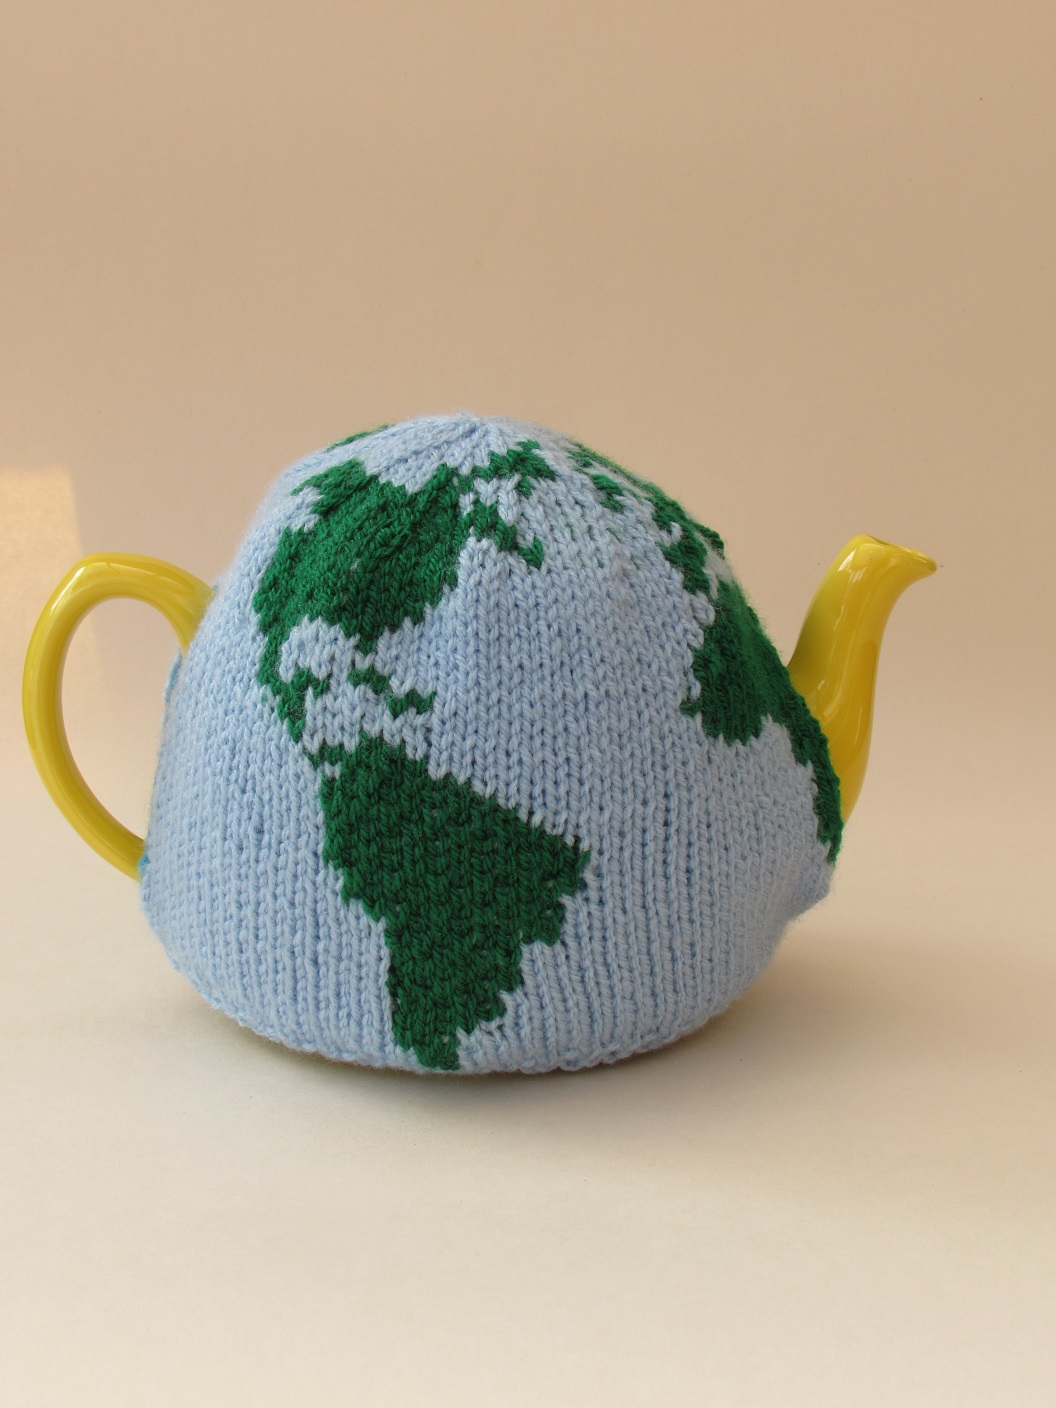 World knitting pattern